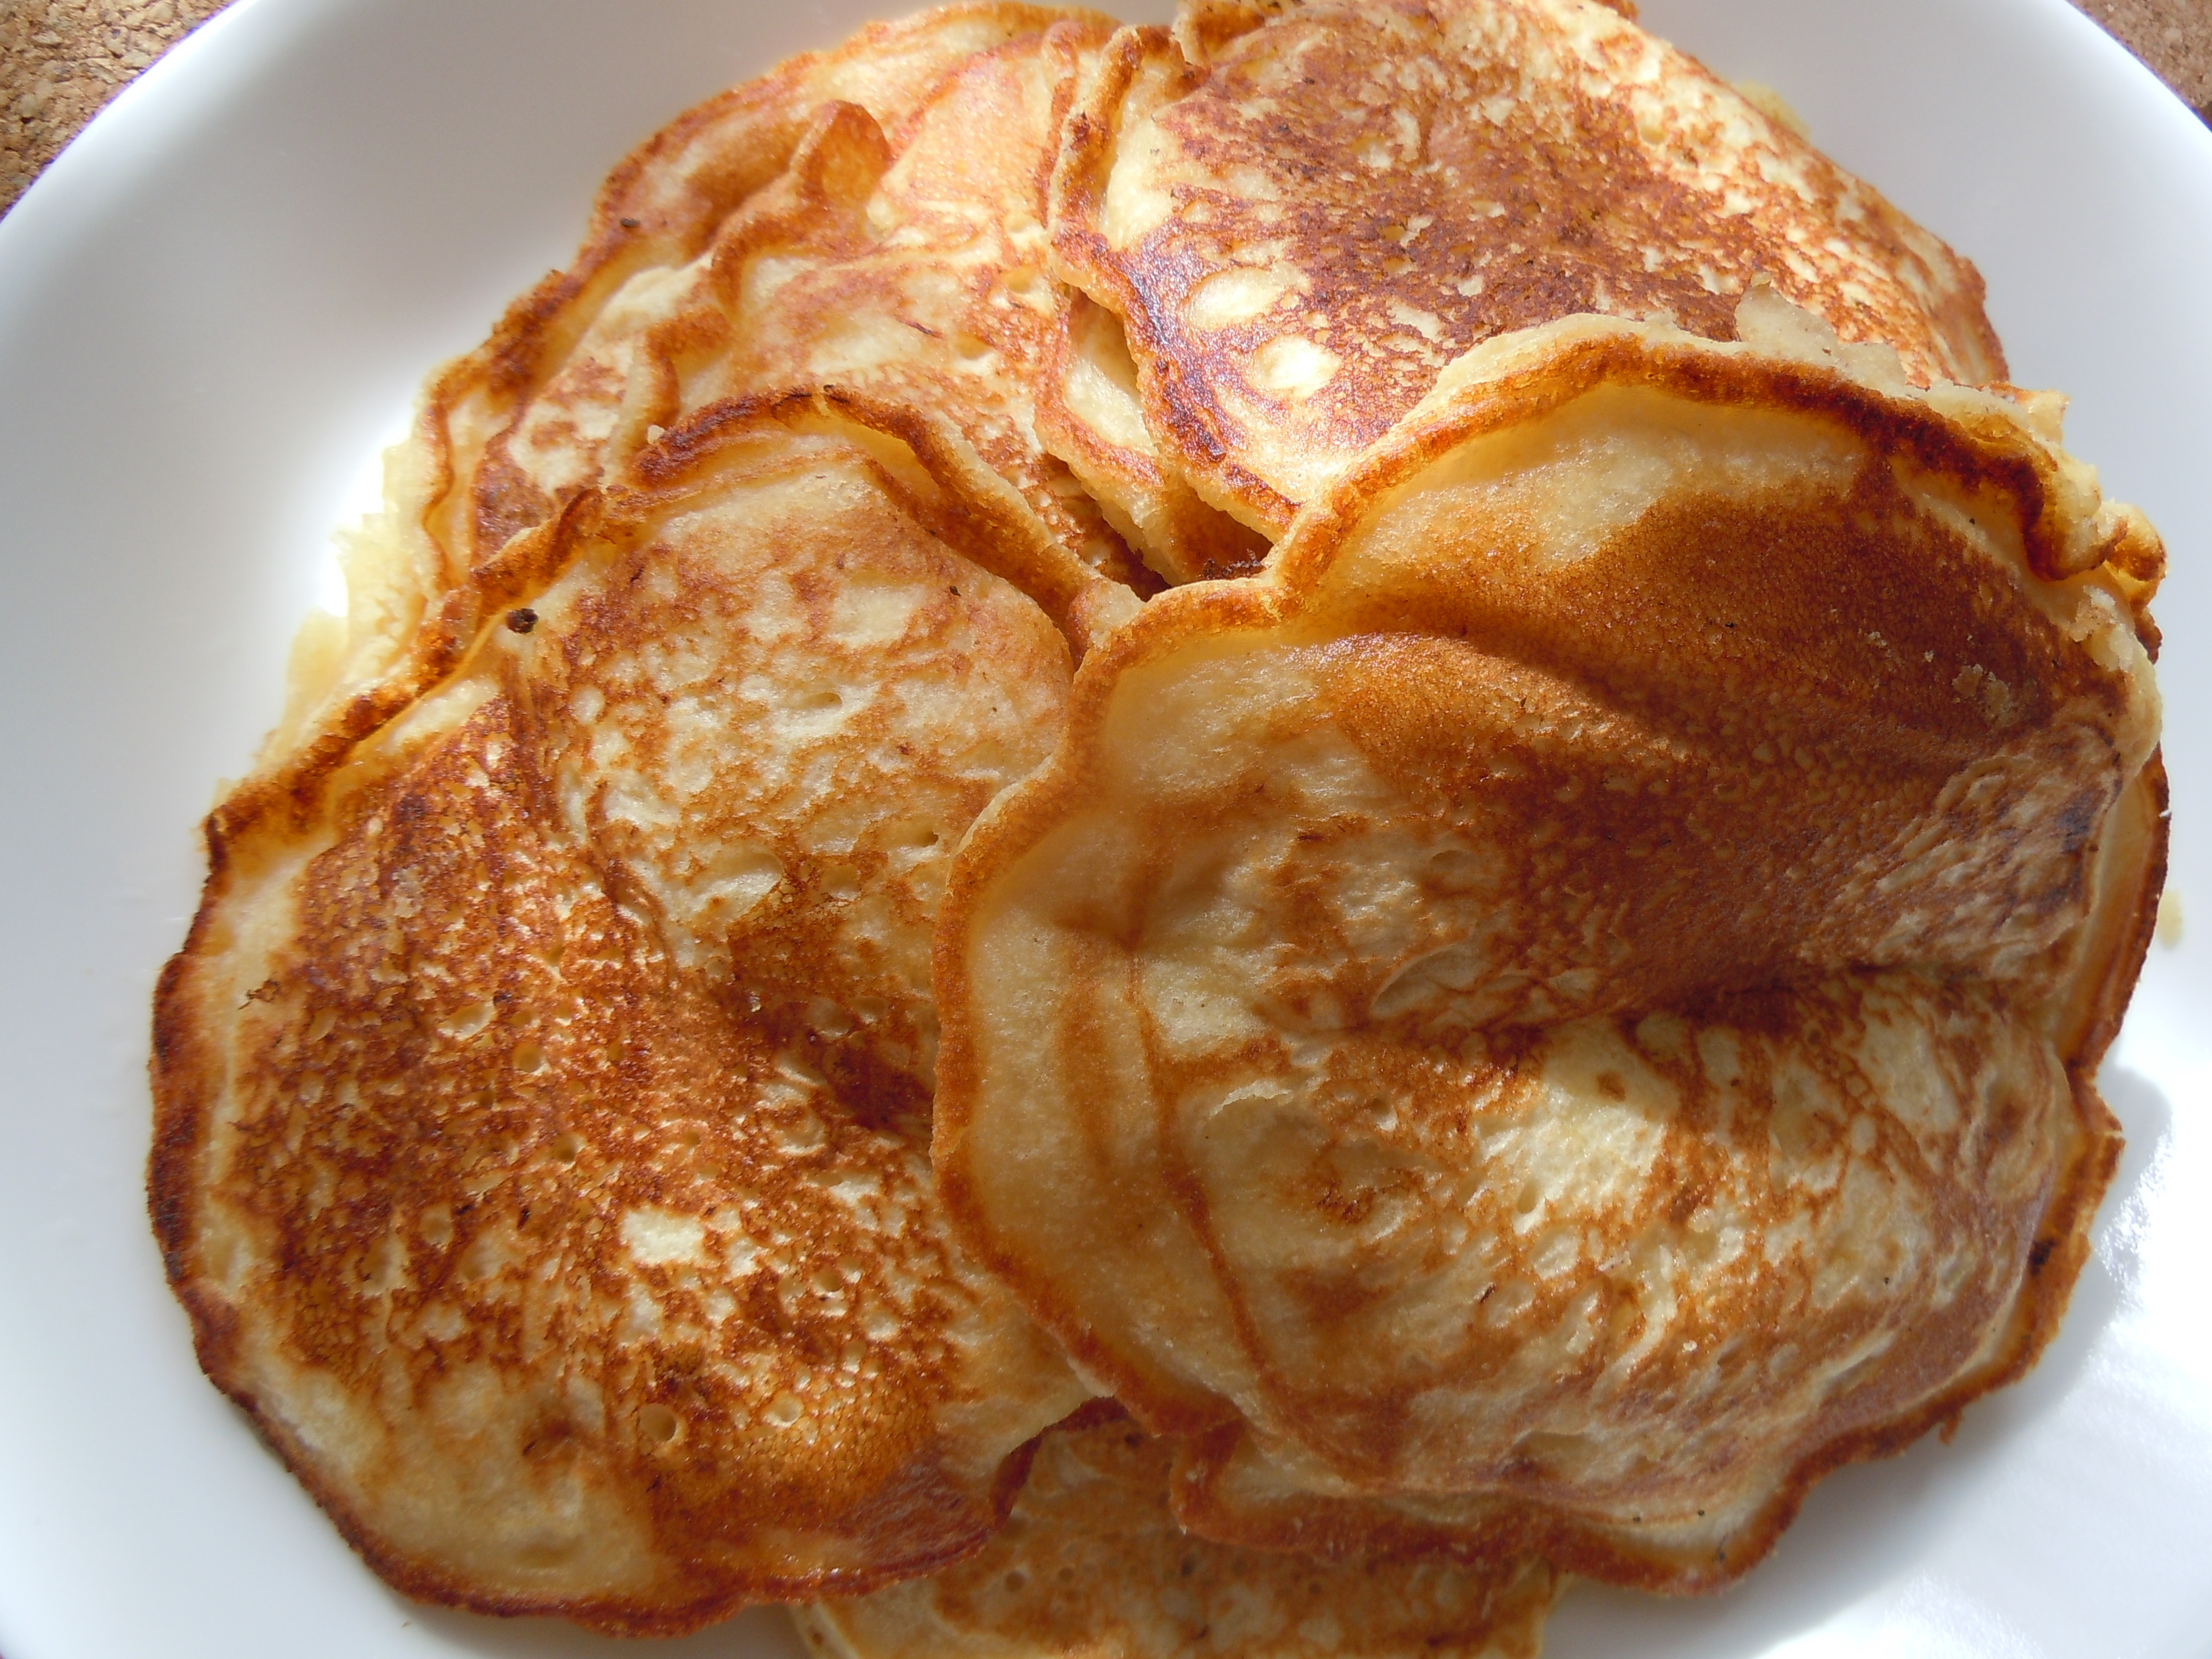 The aunt jemima pancake mix experiment banana buttermilk pancakes how did they taste they tasted freakin amazing so soft and moist and not cakey in the least the addition of the bananas made these so flavourful and ccuart Choice Image